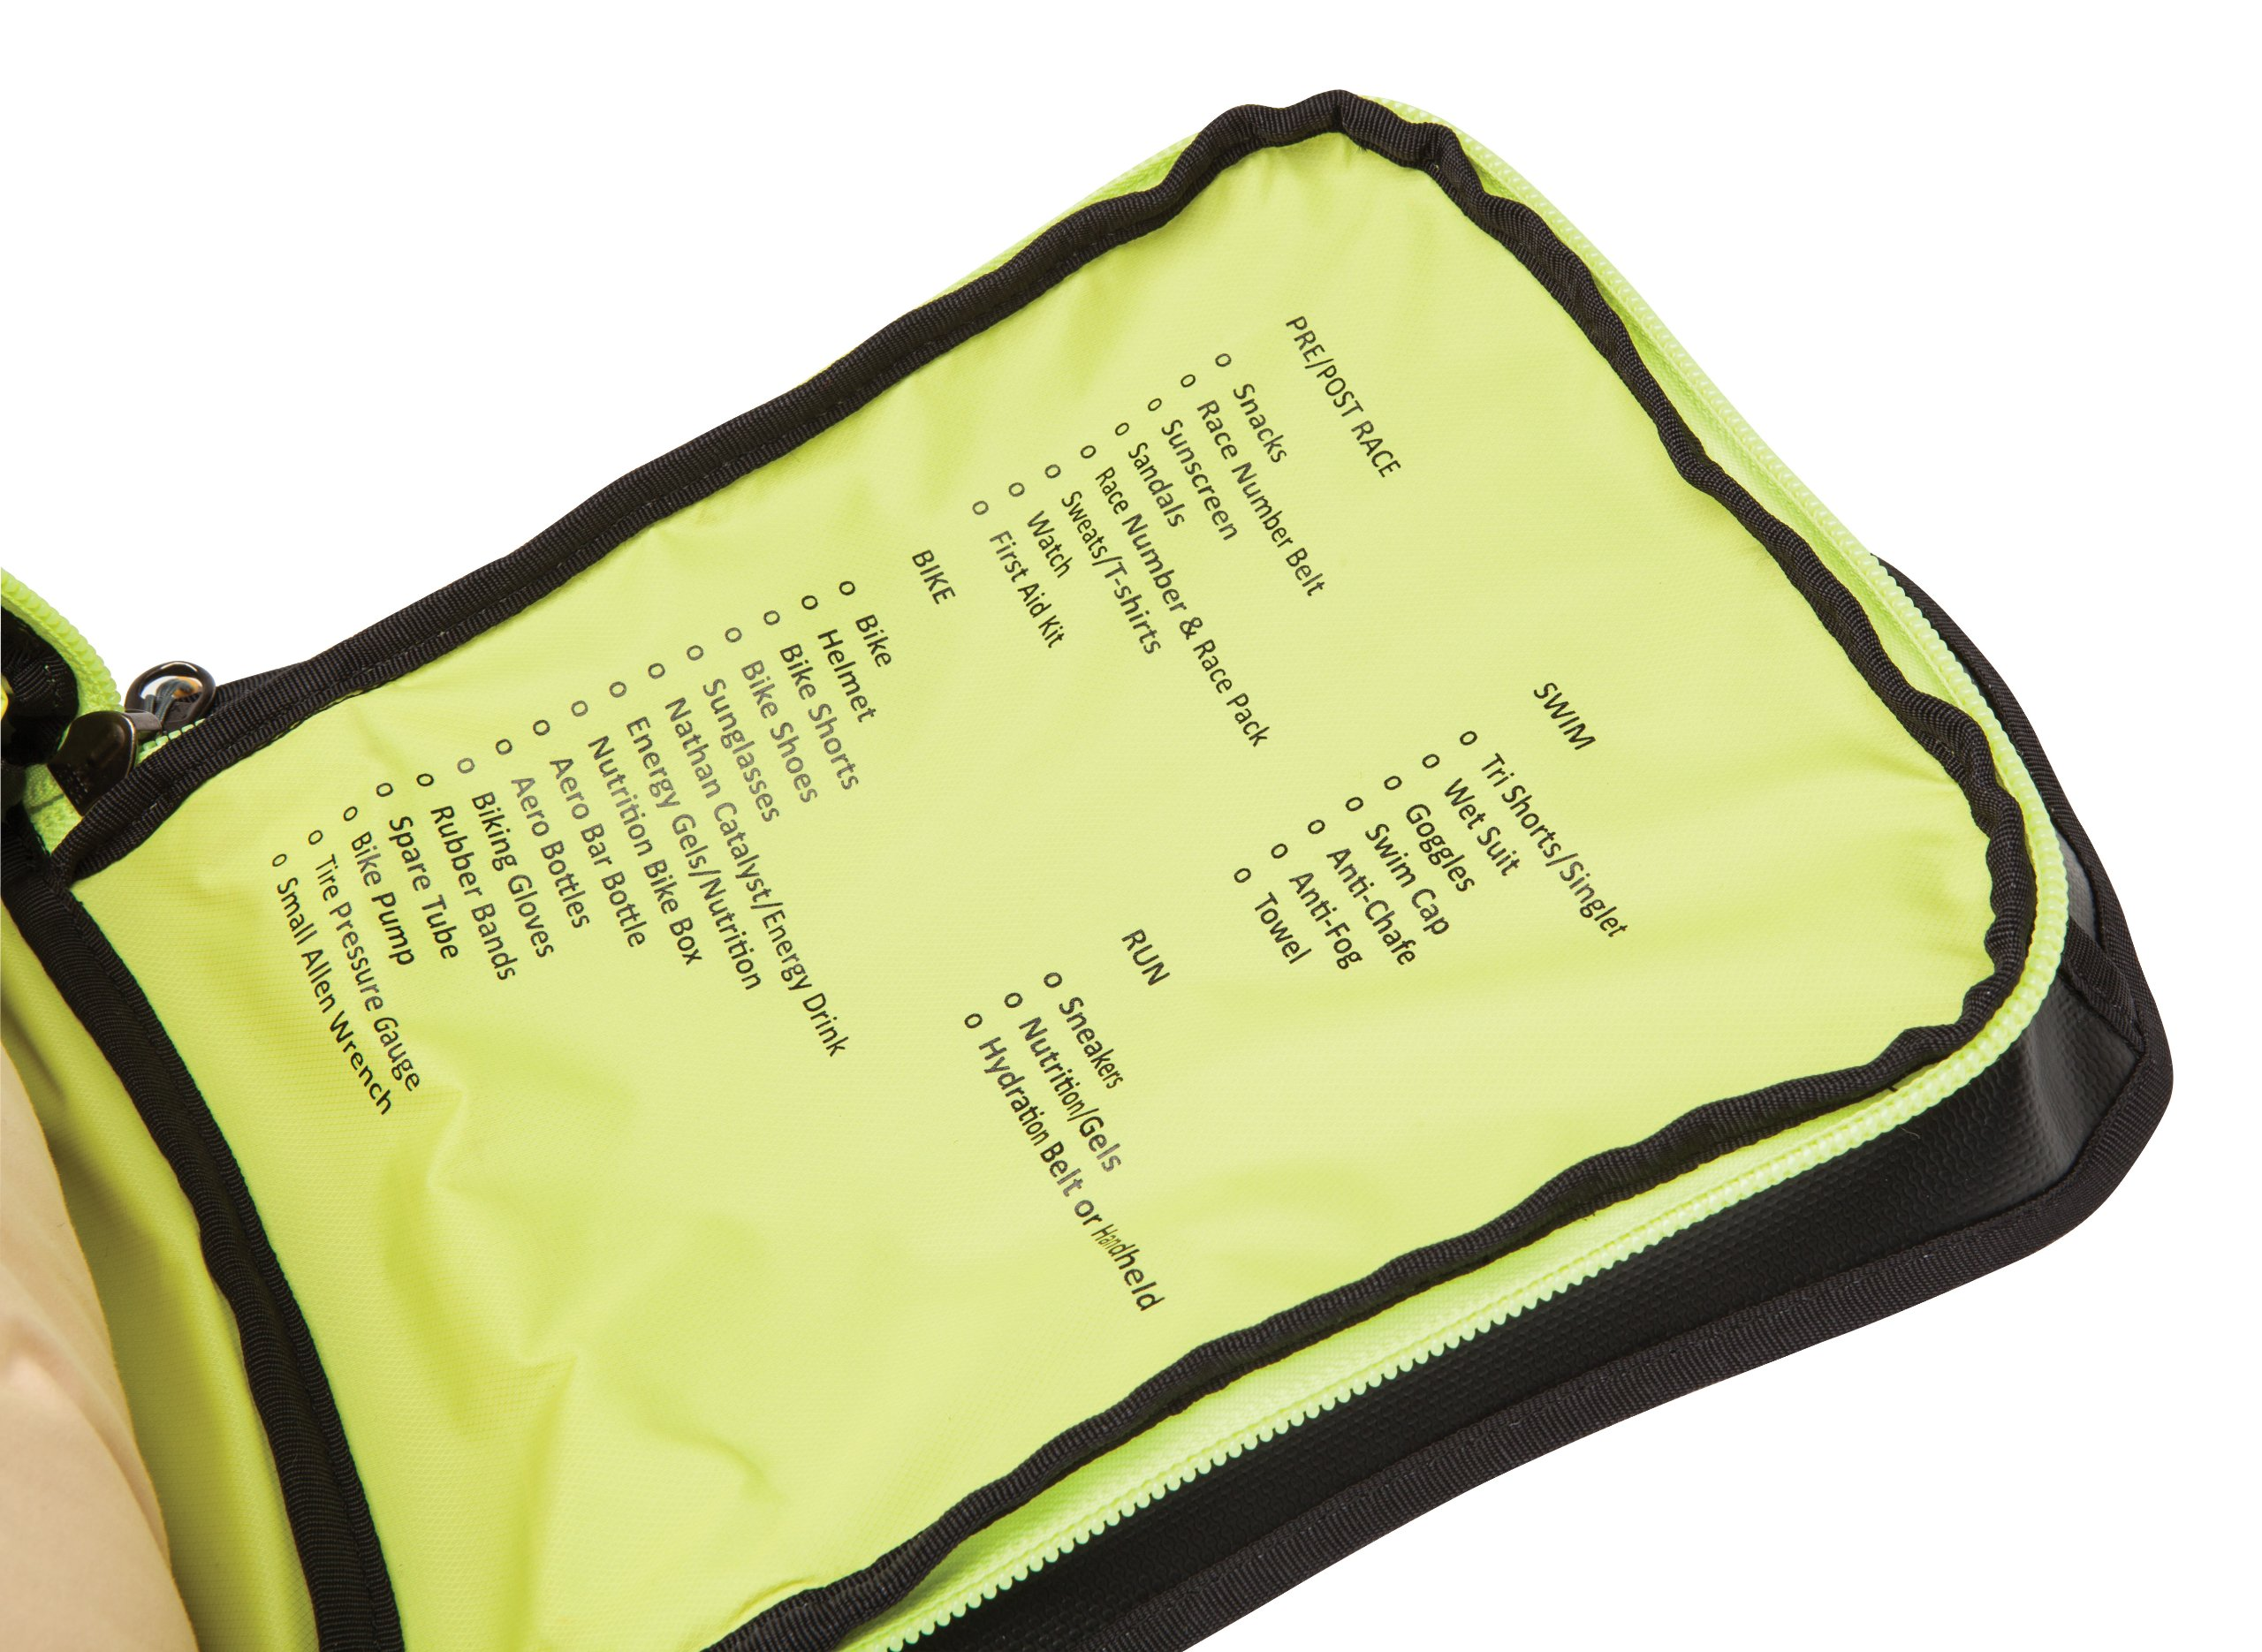 Nathan Flight Control Bag, Black/Sulphur Spring, One Size by Nathan (Image #4)